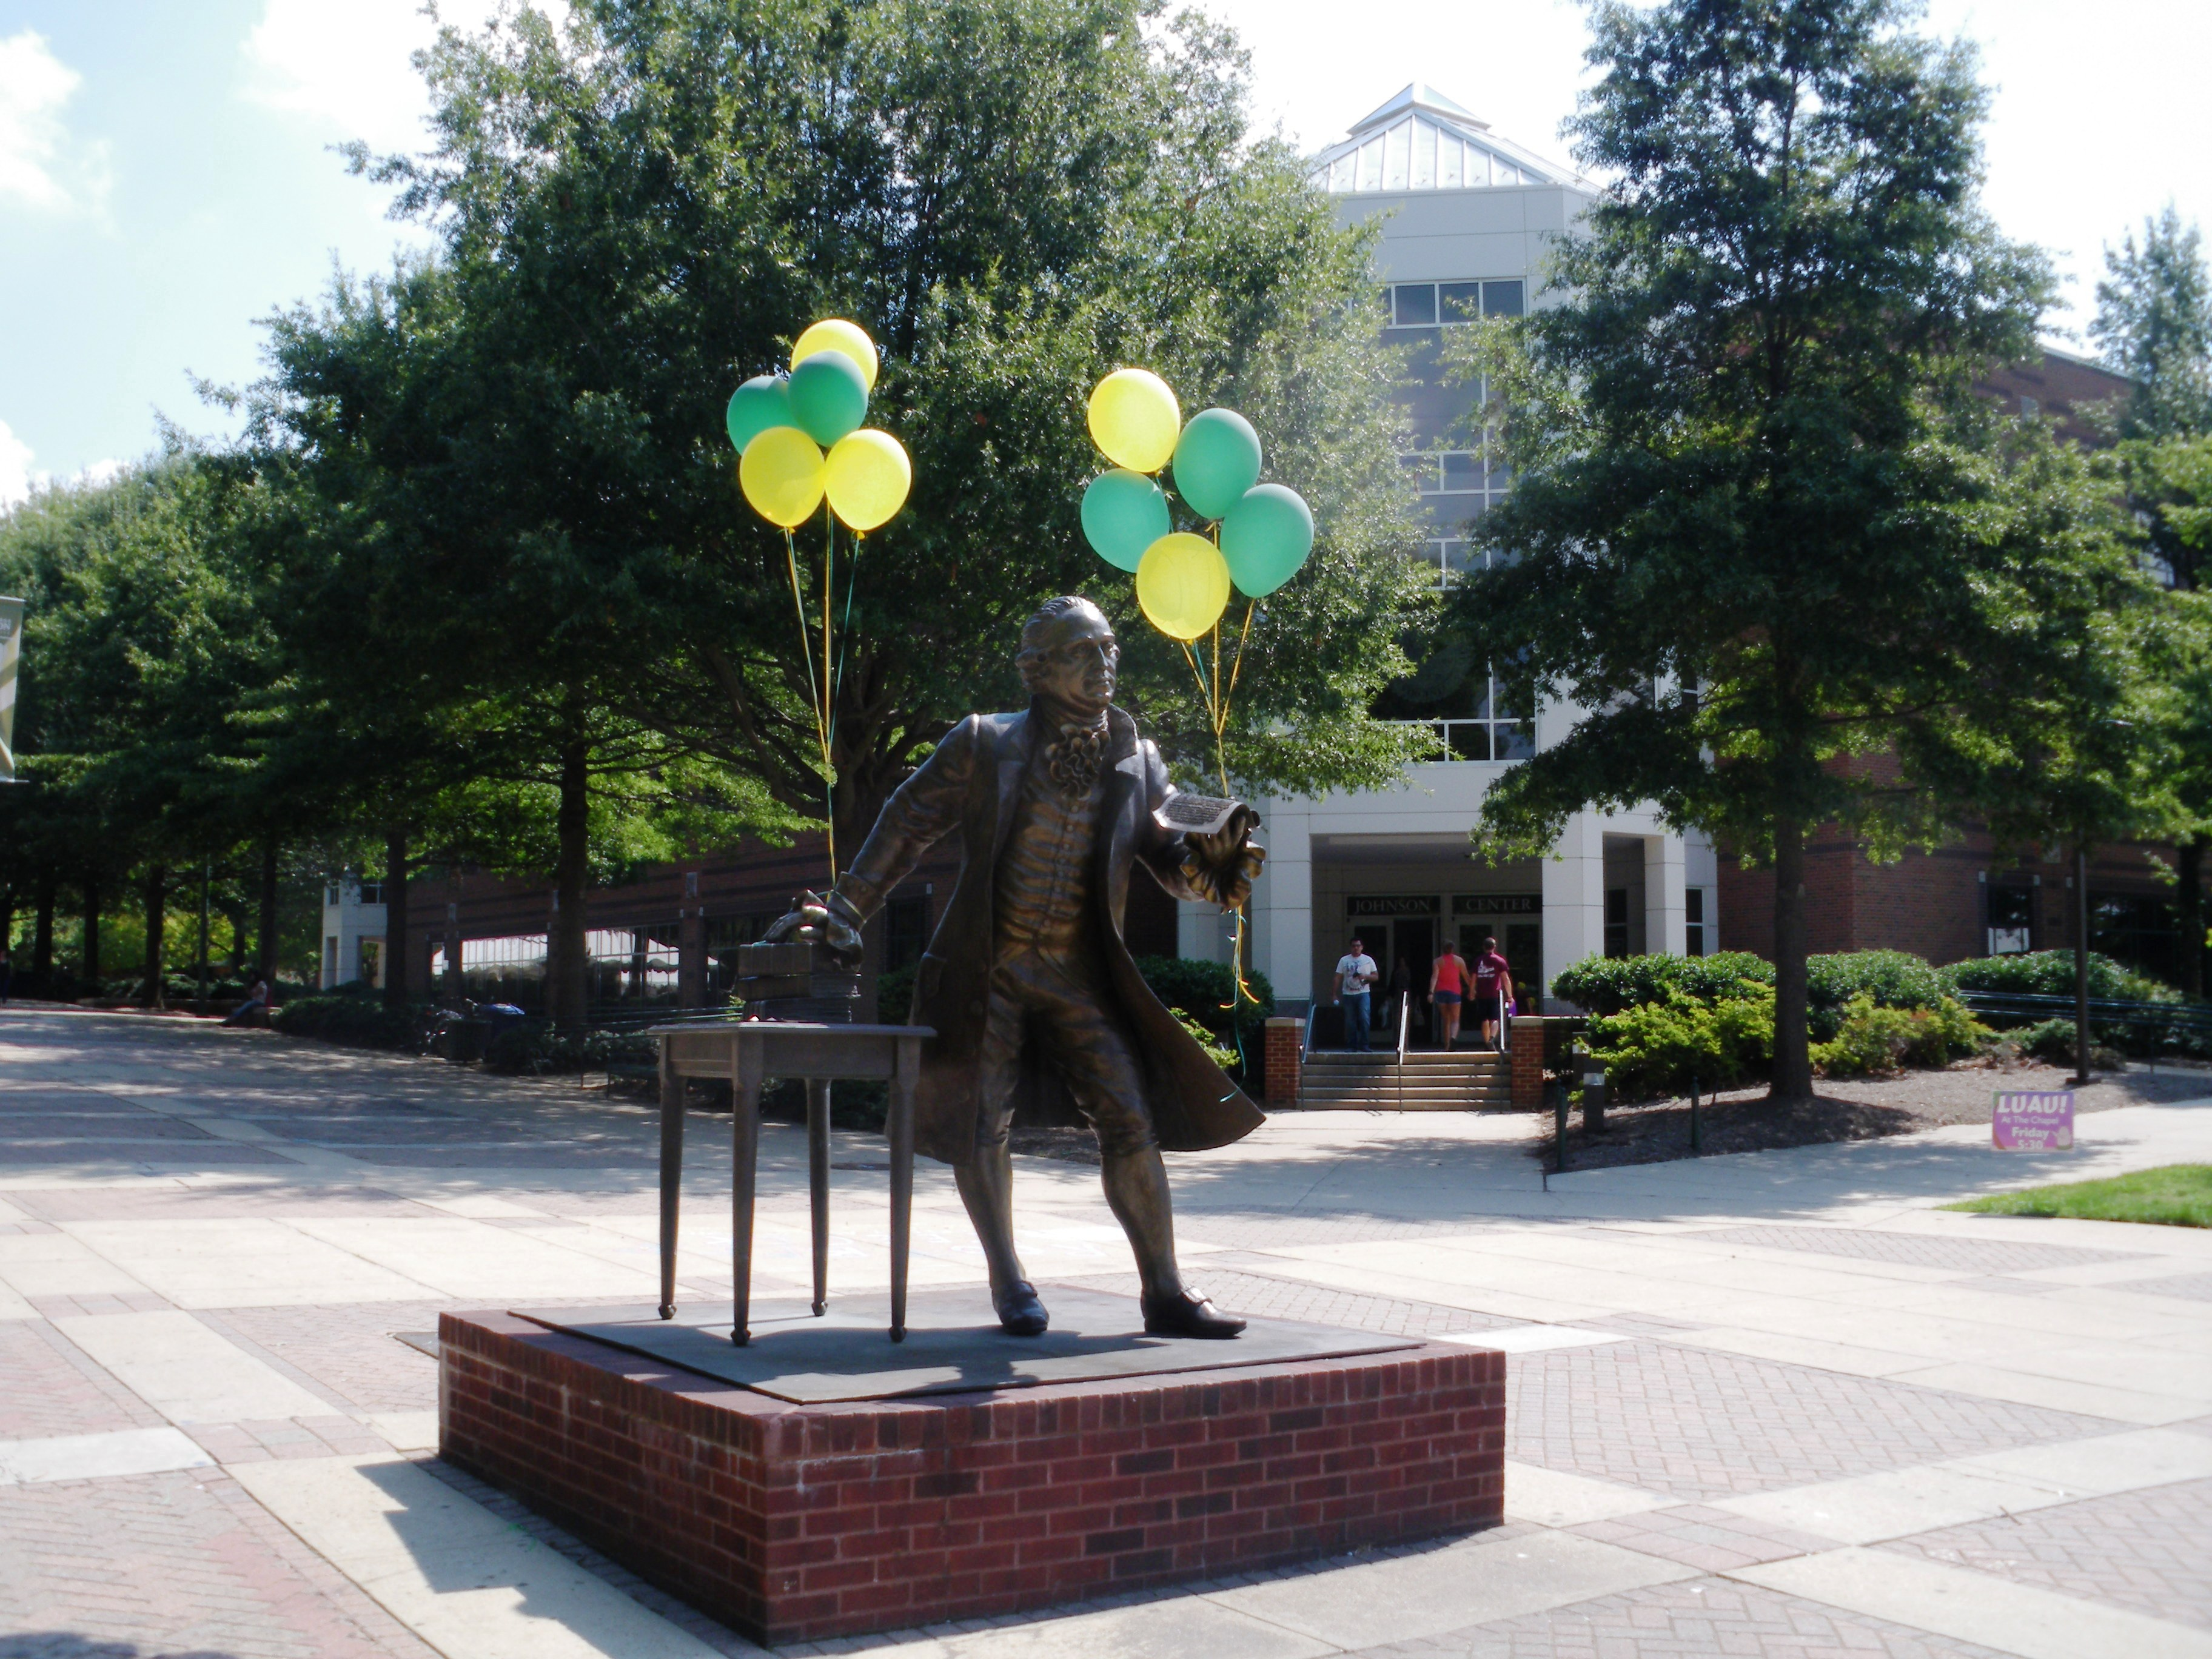 Statue of George Mason in front of the Johnson Center; image by Lucien Dalarun - Own work, CC BY-SA 3.0, https://commons.wikimedia.org/w/index.php?curid=22717714